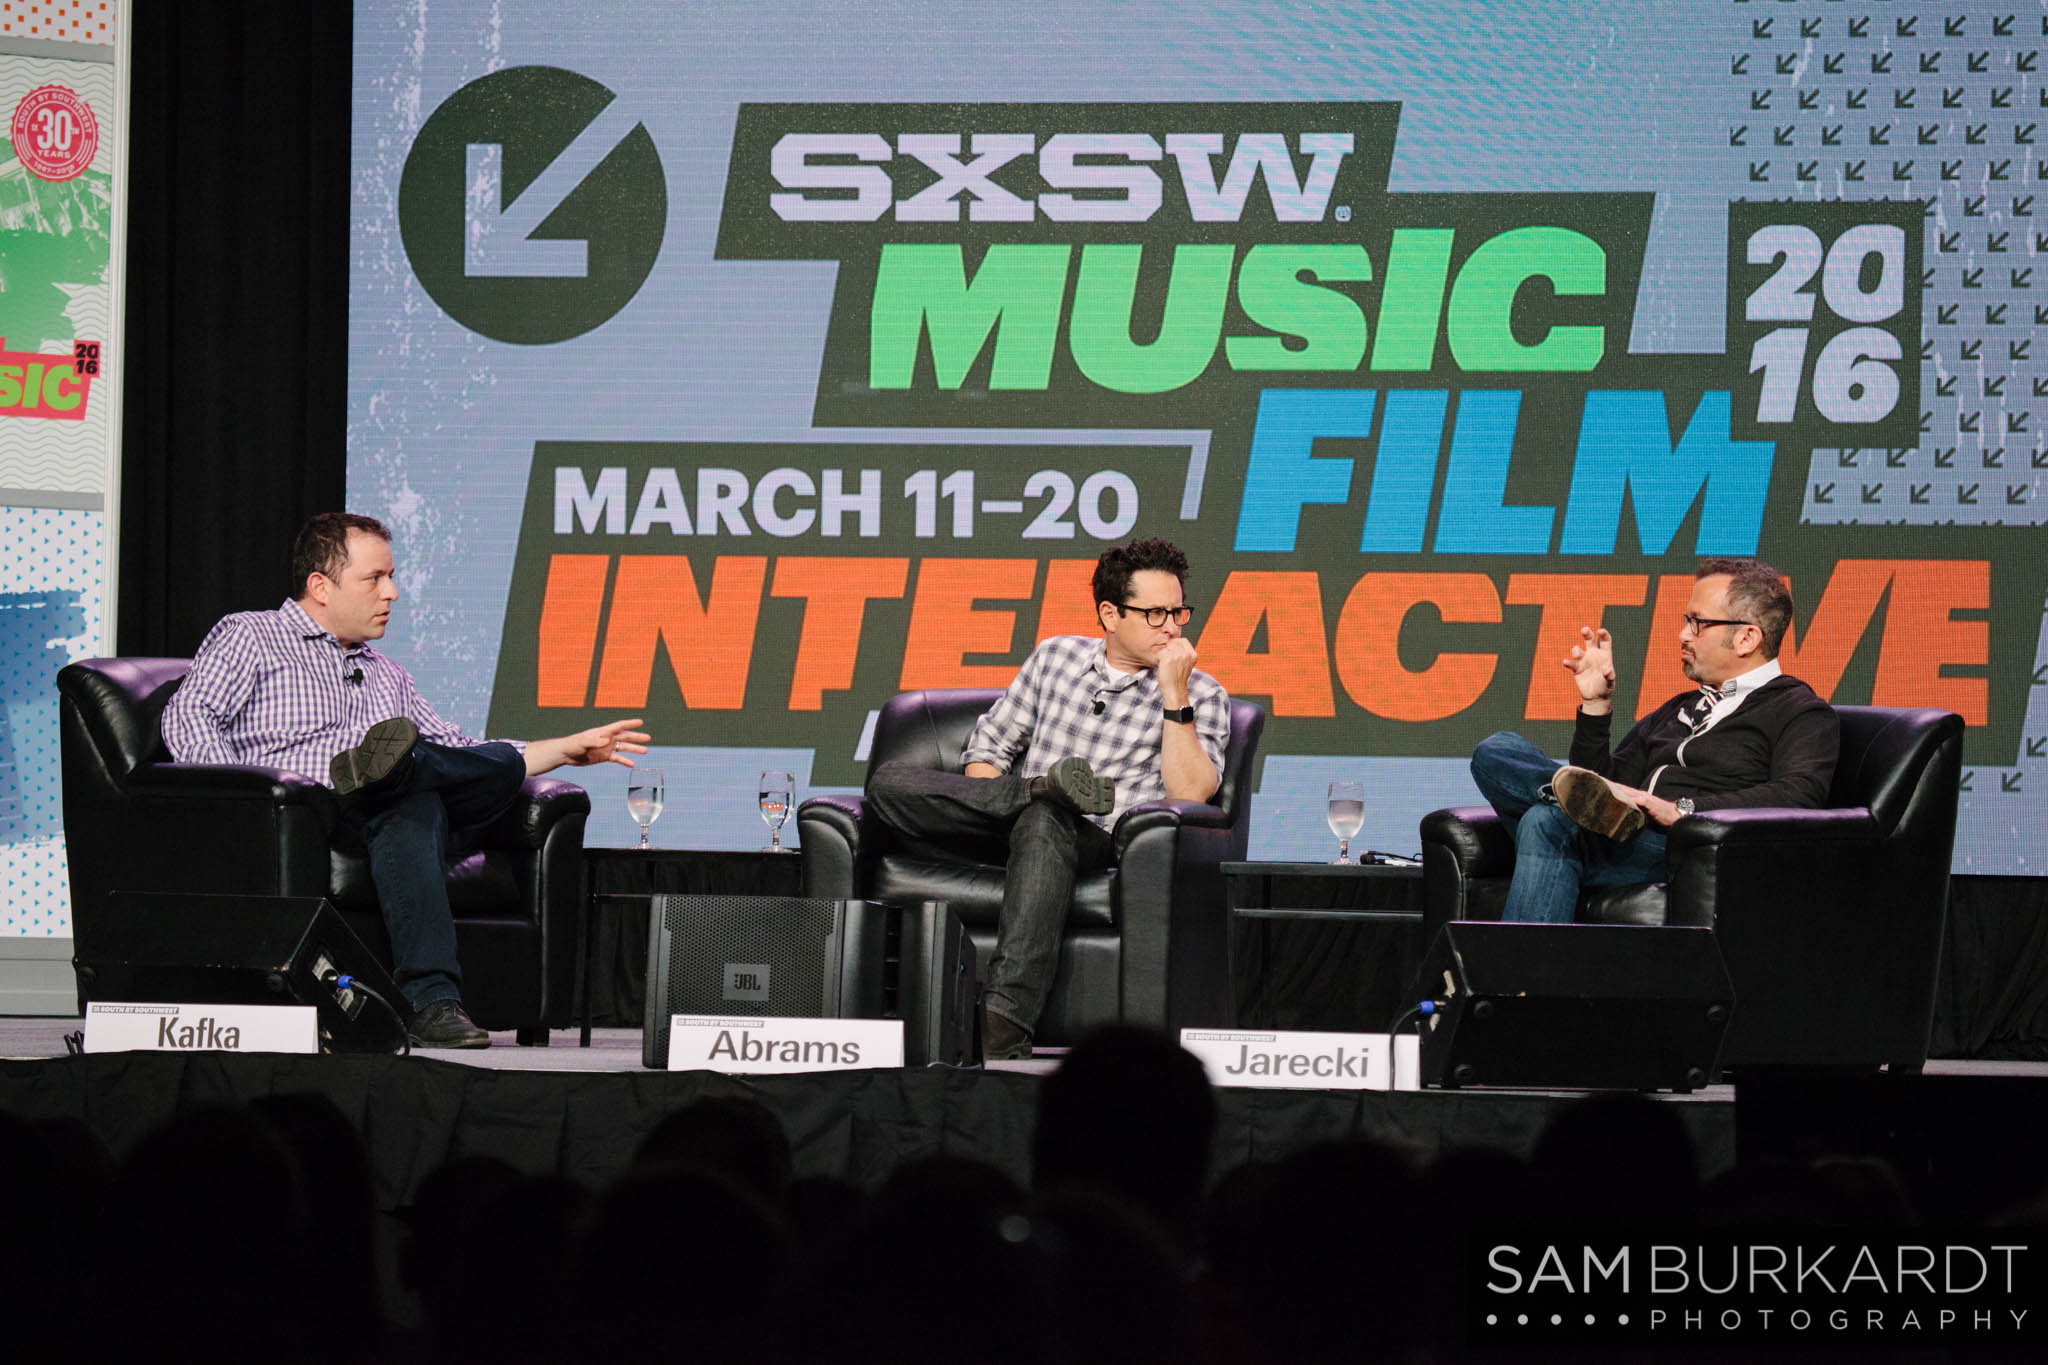 J.J. Abrams interview 'The Eyes of Robots and Murderers' at SXSW 2016